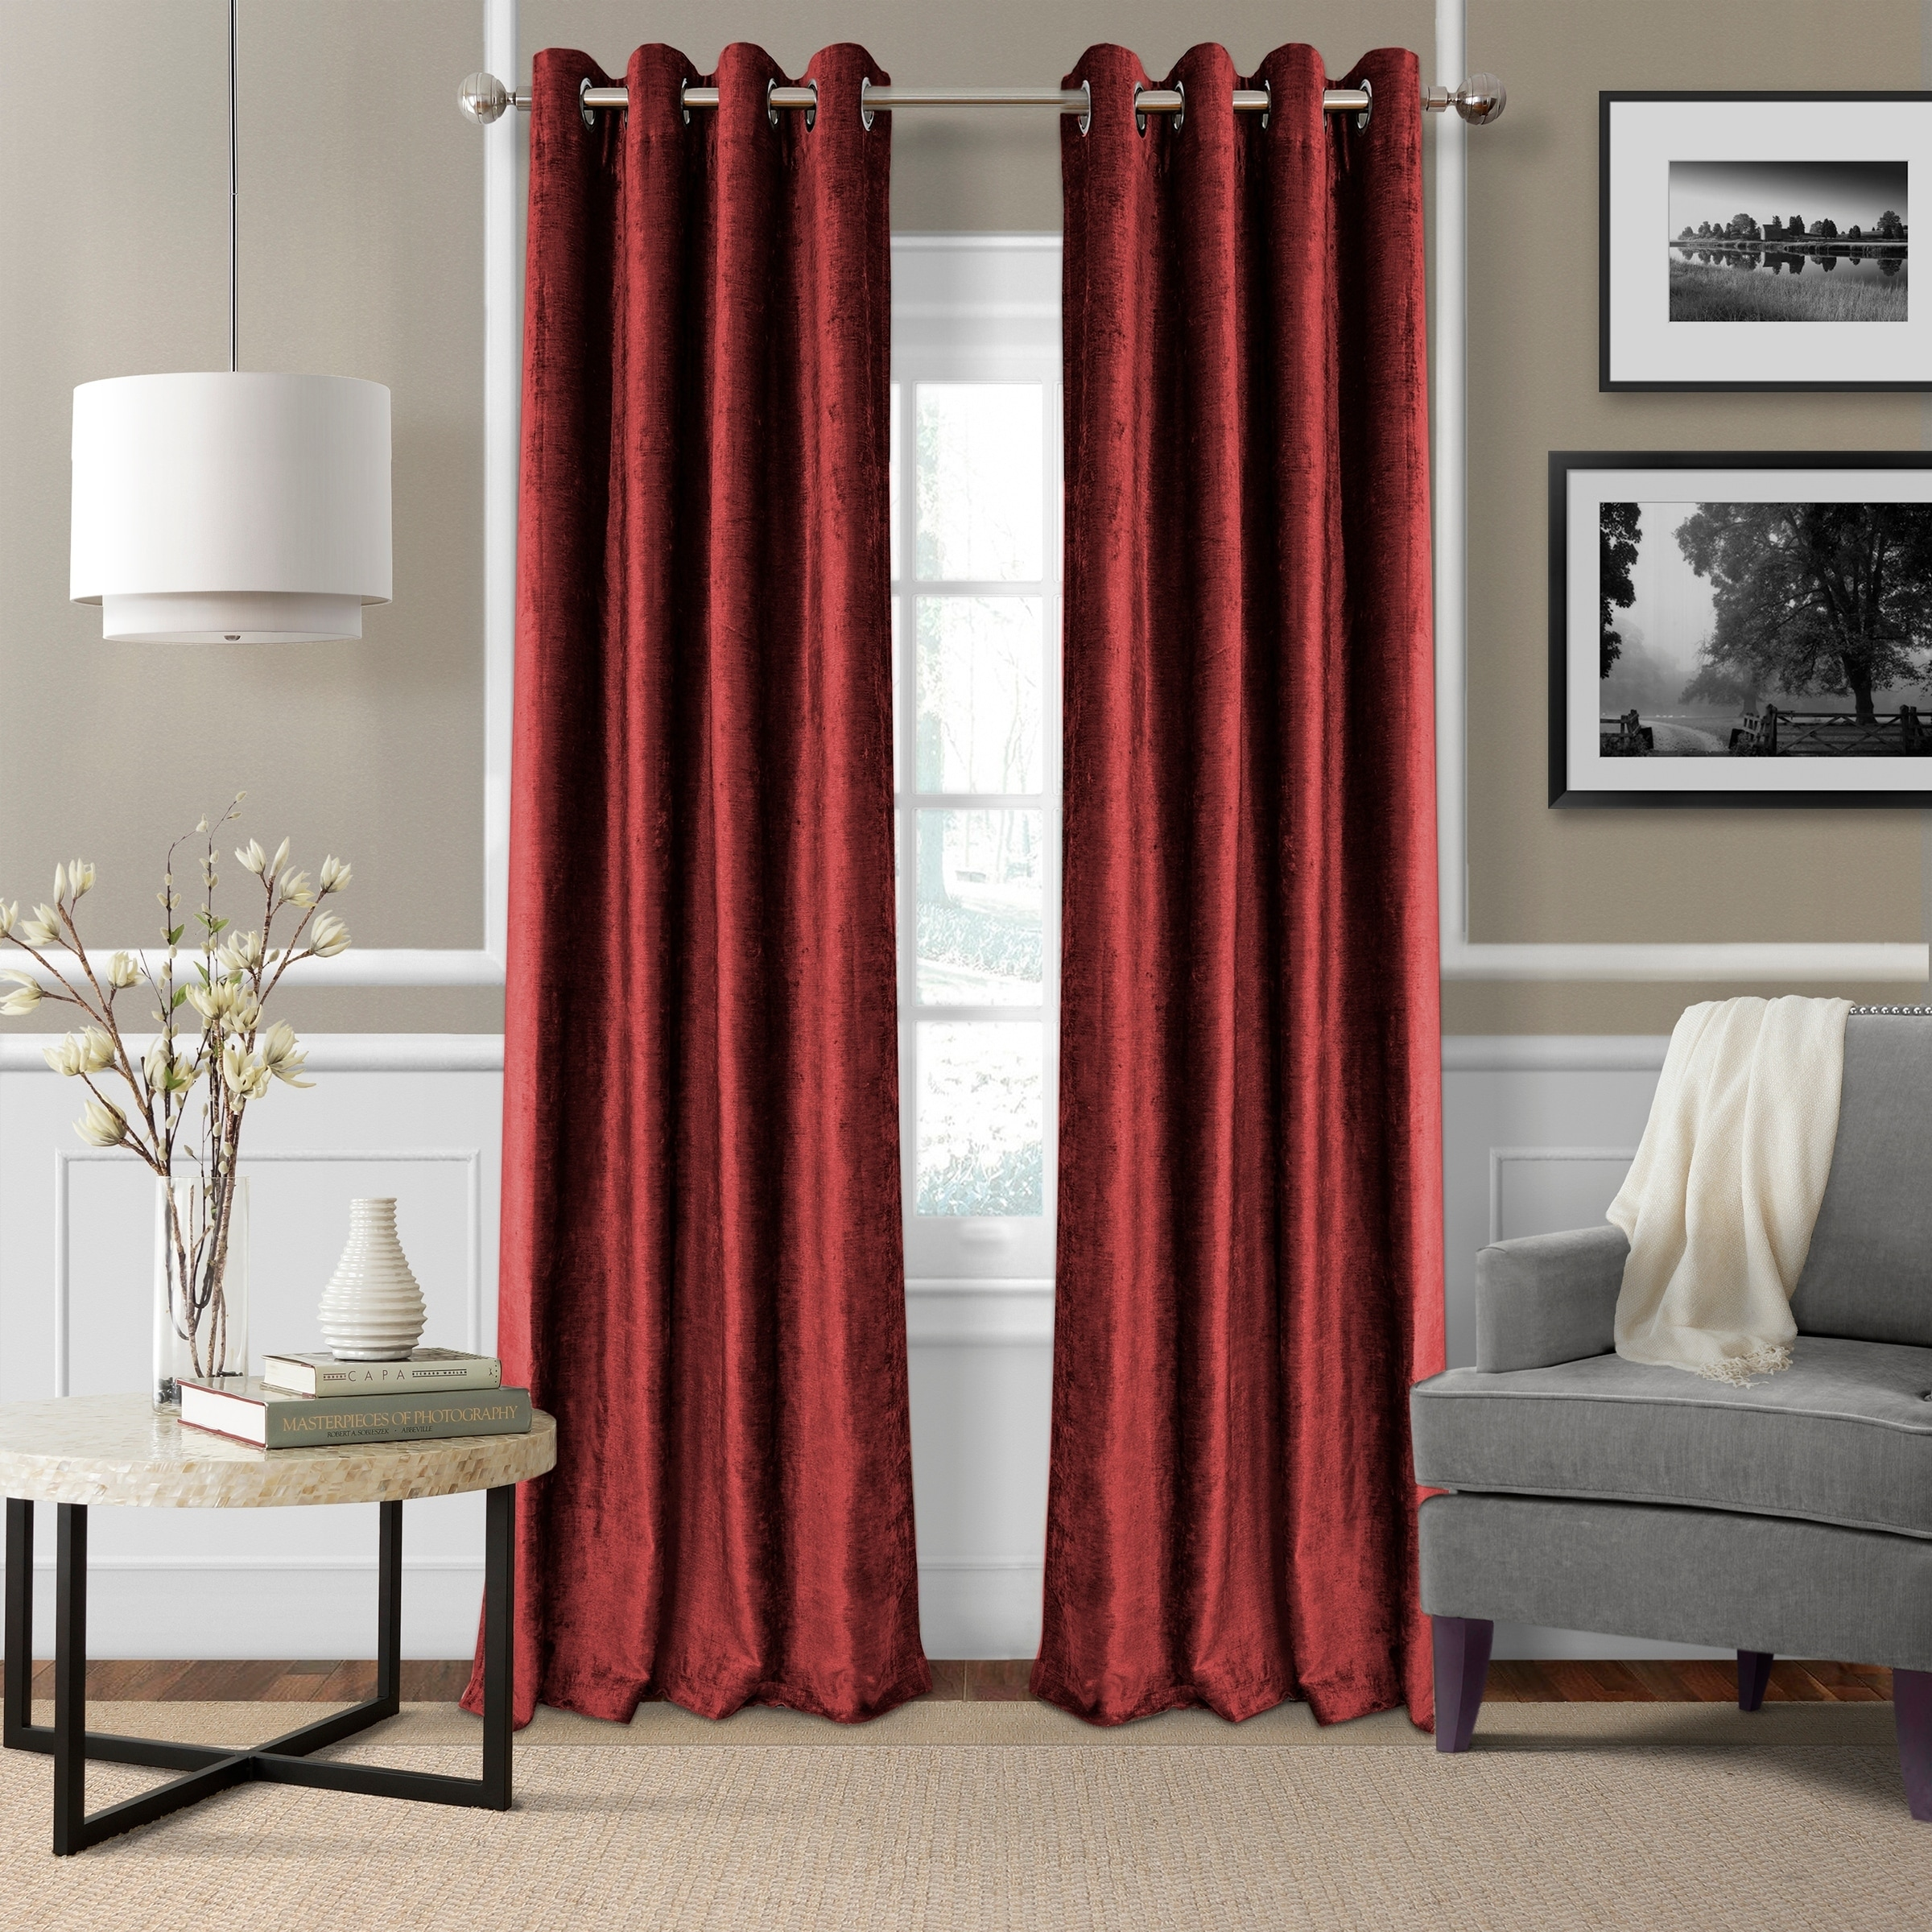 sliding door doors for curtains window luxury drapes curtain of saving glass coverings efficient fresh ideas insulating energy